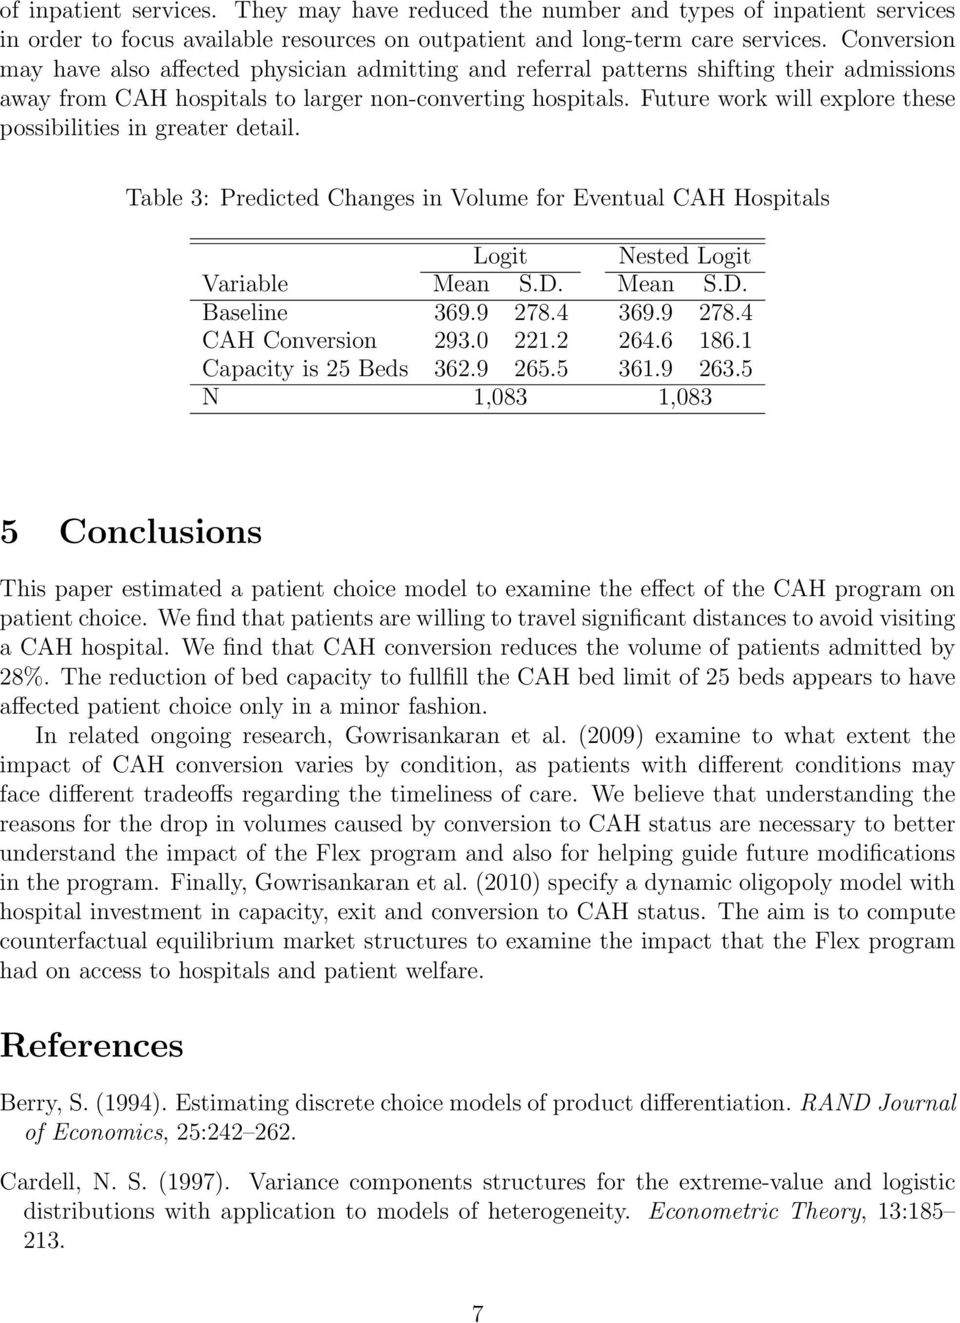 Future work will explore these possibilities in greater detail. Table 3: Predicted Changes in Volume for Eventual CAH Hospitals Logit Nested Logit Variable Mean S.D. Mean S.D. Baseline 369.9 278.